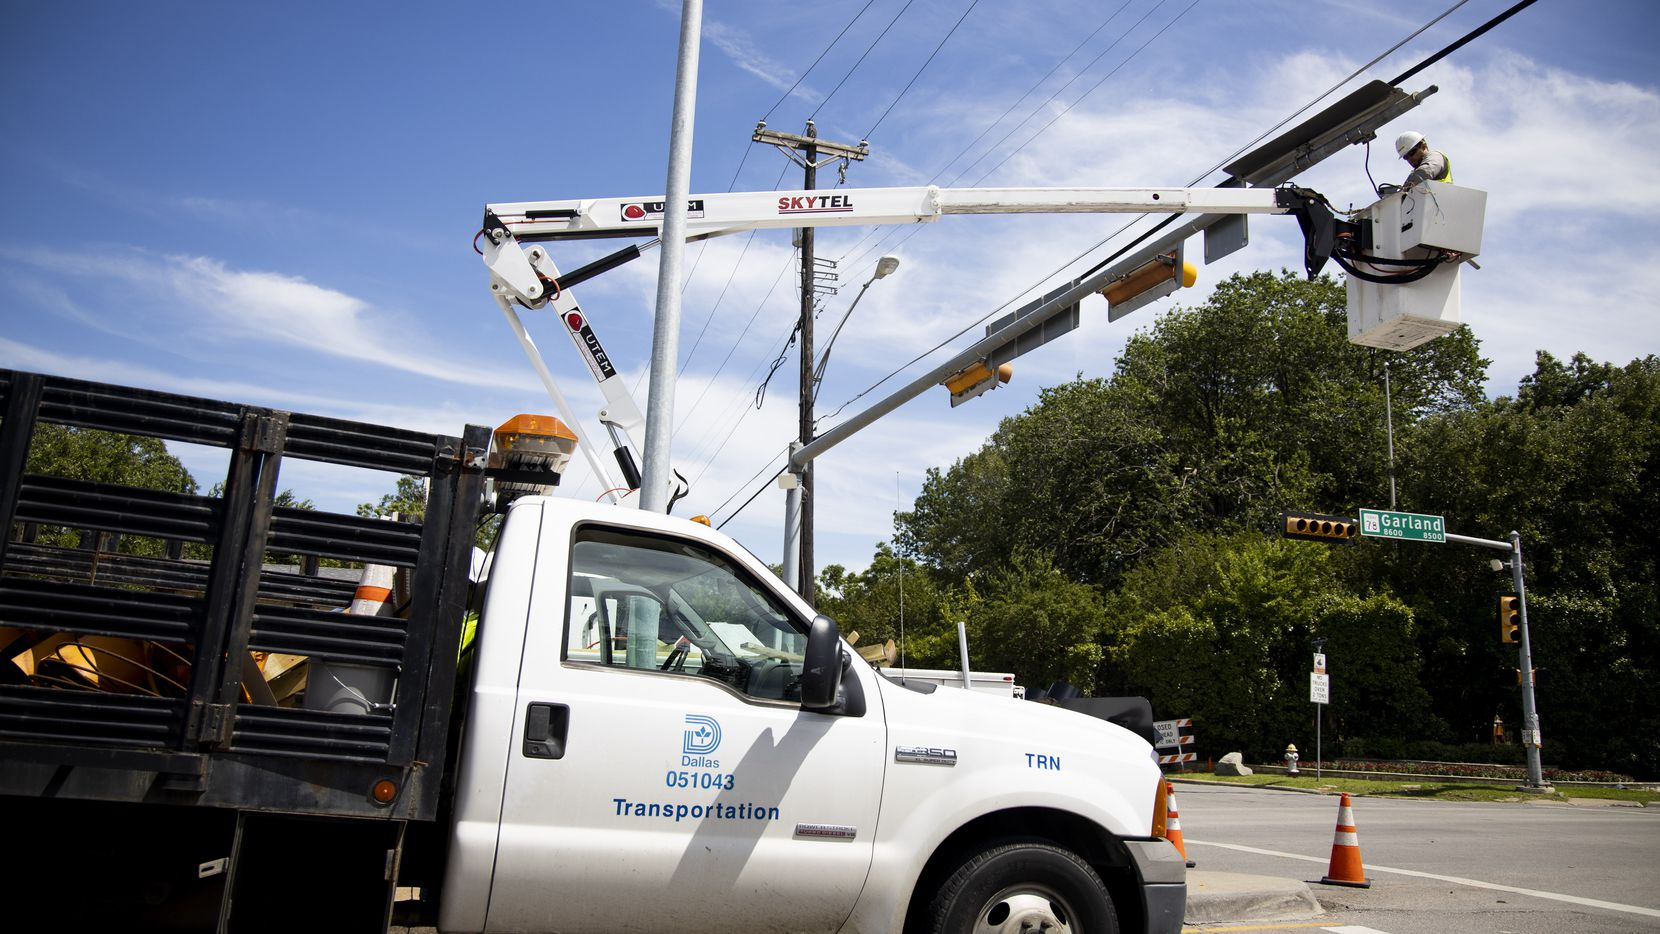 A city employee worked on traffic lights near the Dallas Arboretum and Botanical Garden on Monday, June 10, 2019. A strong storm produced widespread damage throughout Dallas-Fort Worth, causing more than 200,000 people to lose power.